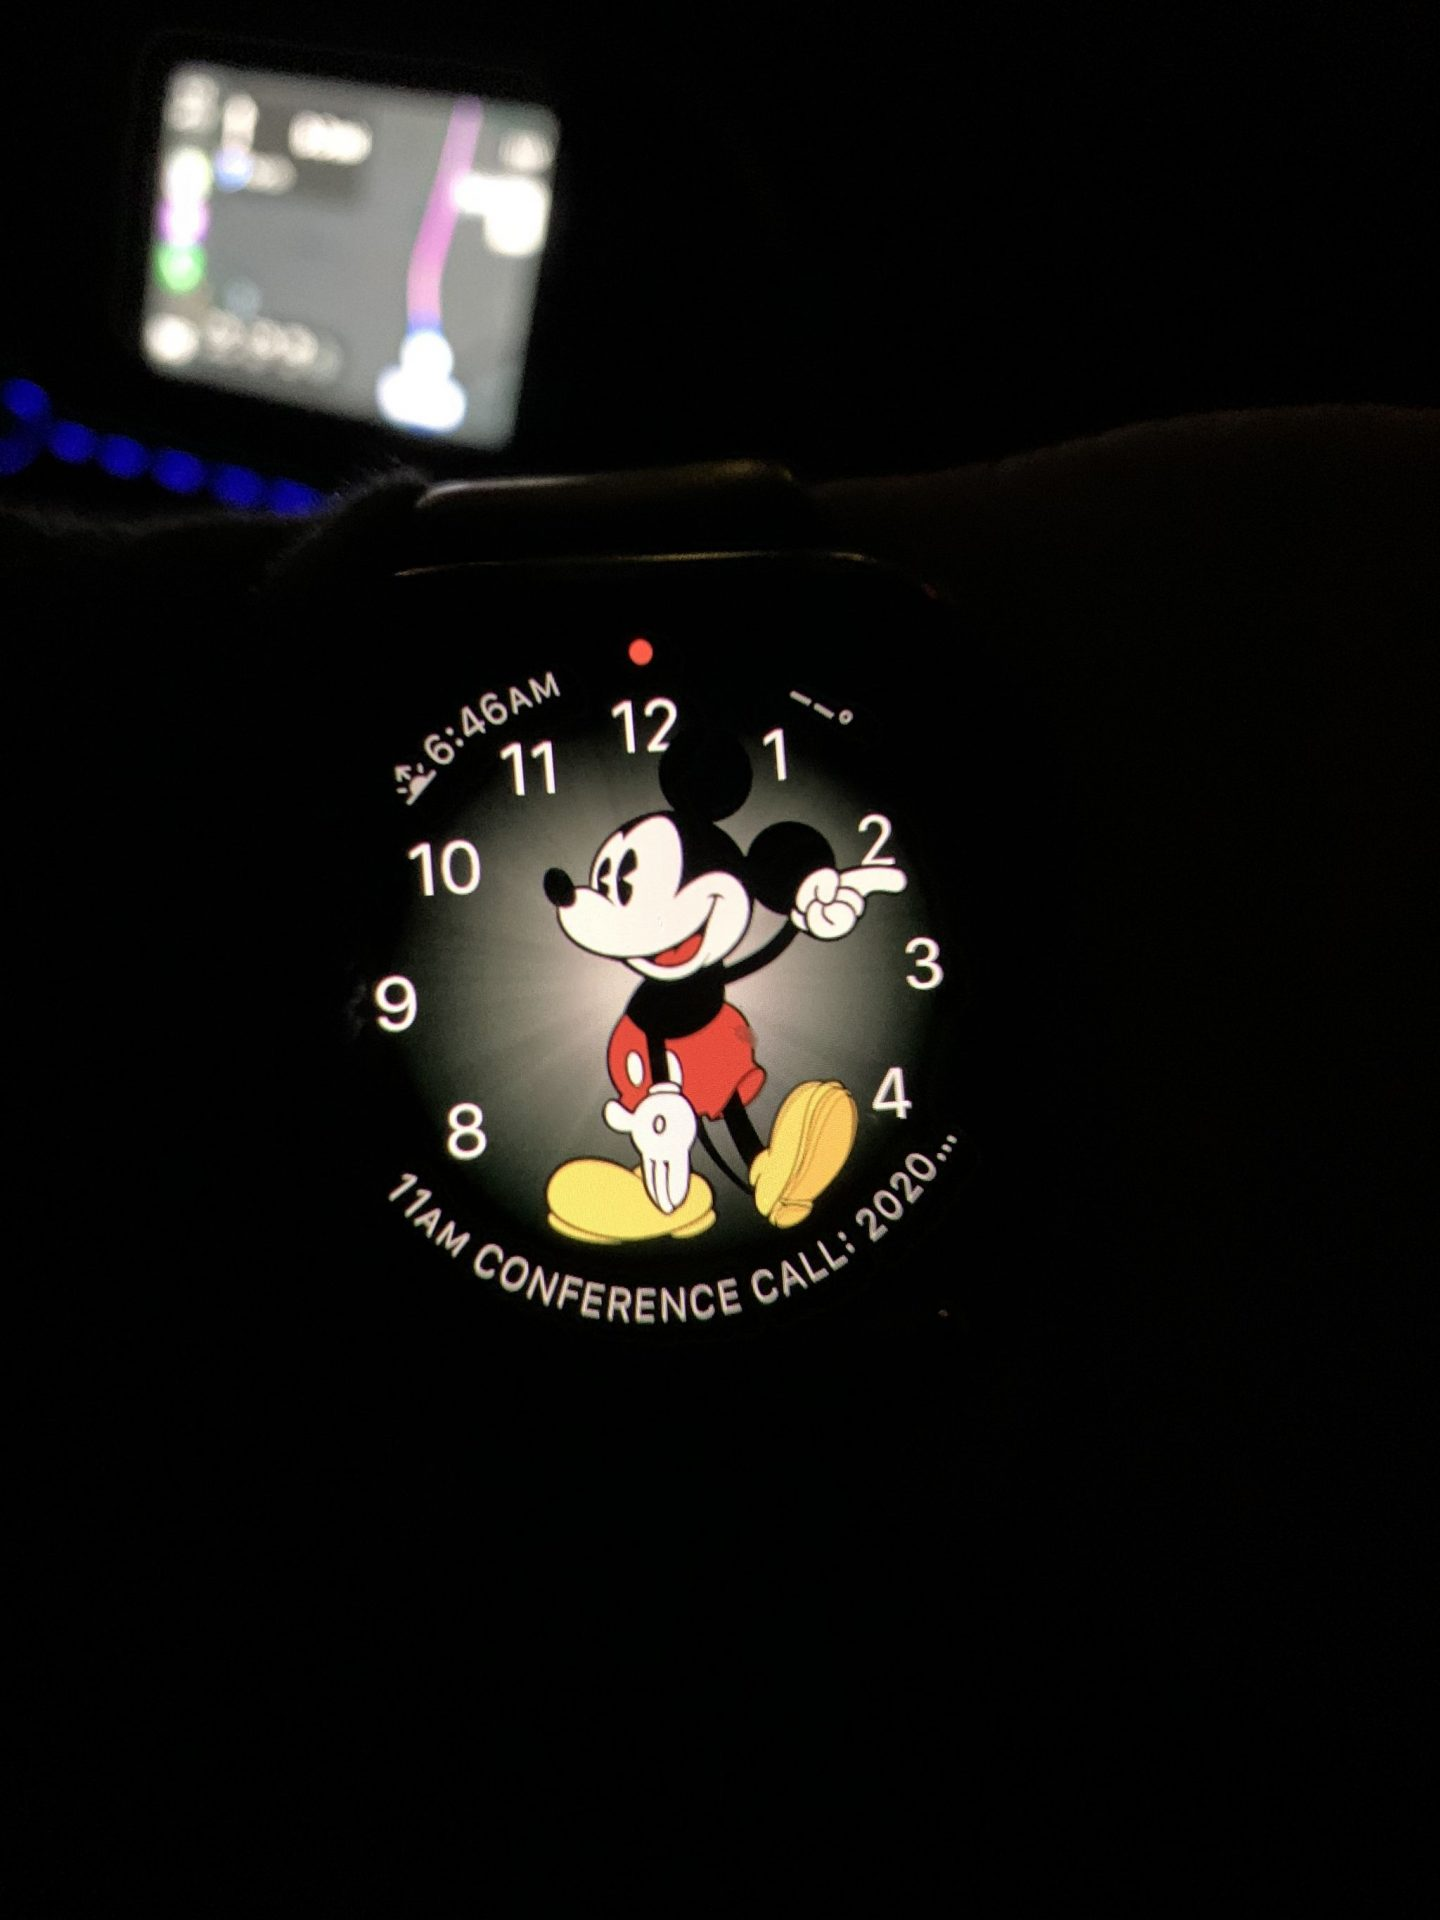 Disneyland in a day – nine tips on how to maximize your day and power through, where to go, what to wear, foods to try